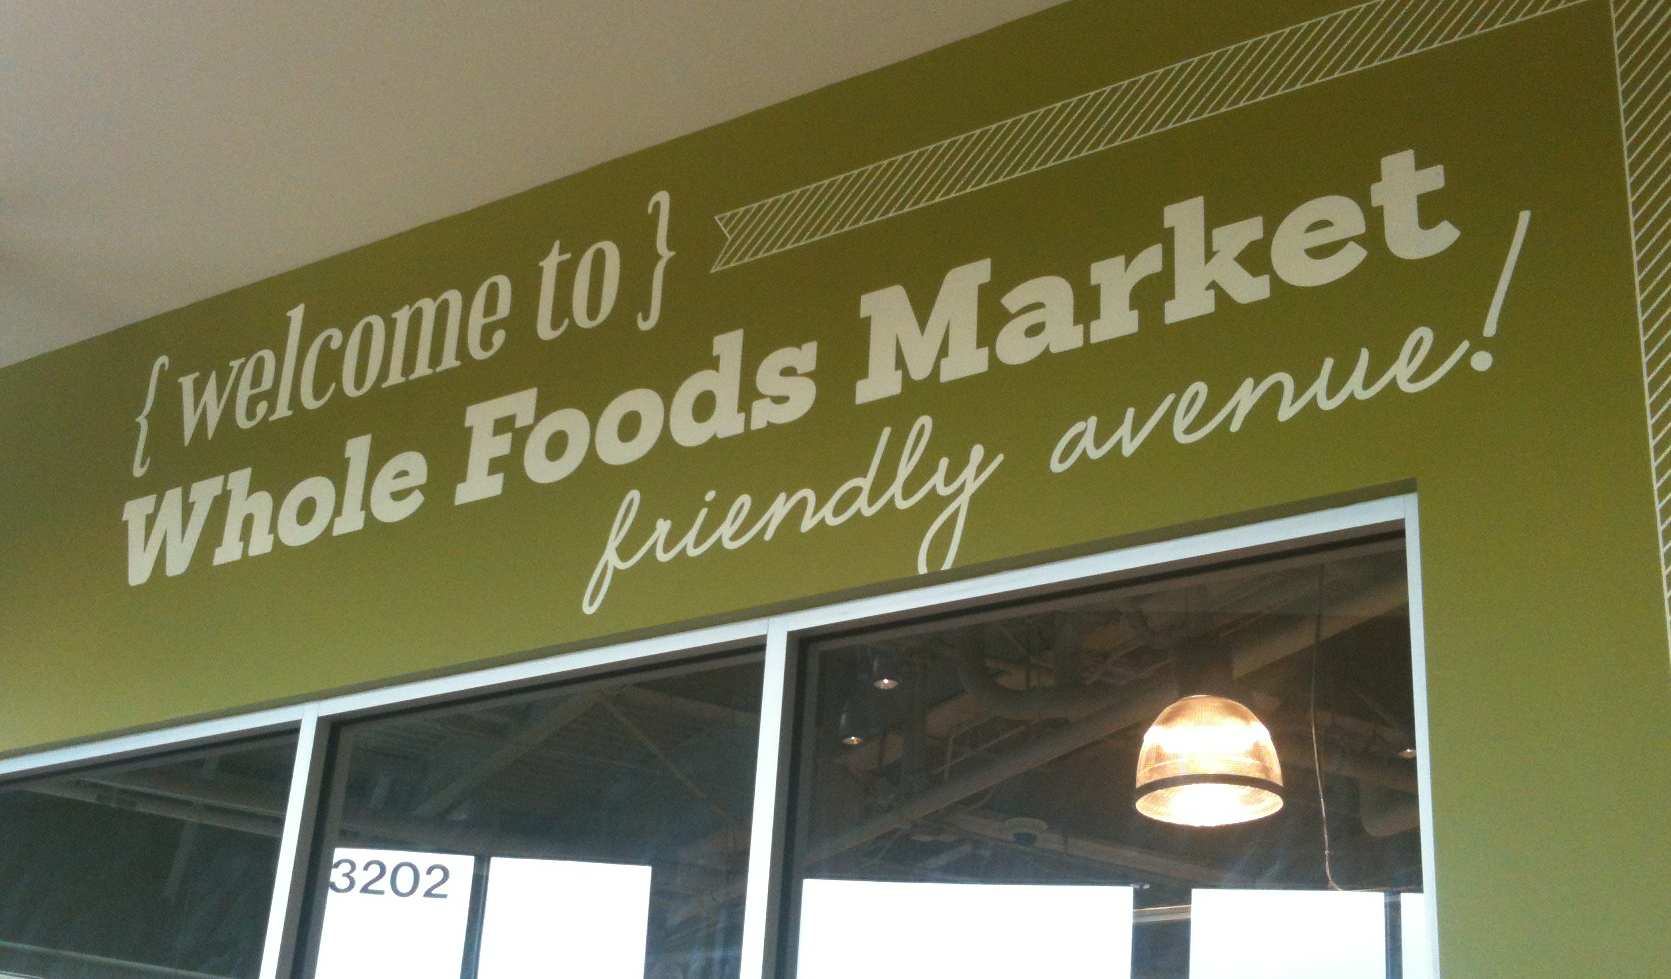 Whole Foods Market : A Tour of the New Greensboro, North Carolina Store